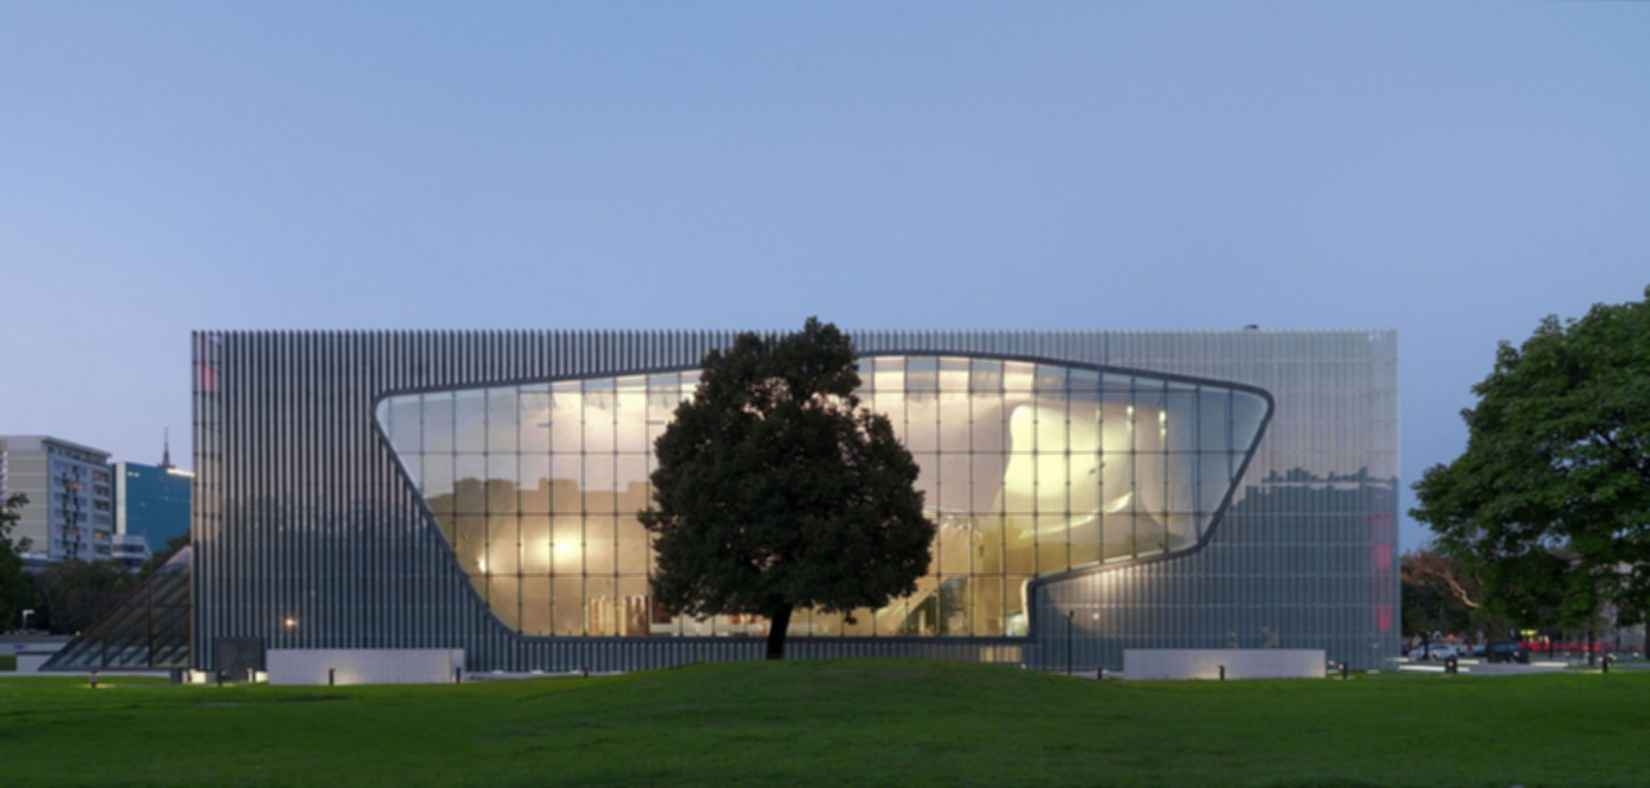 Museum Of The History Of Polish Jews - Exterior